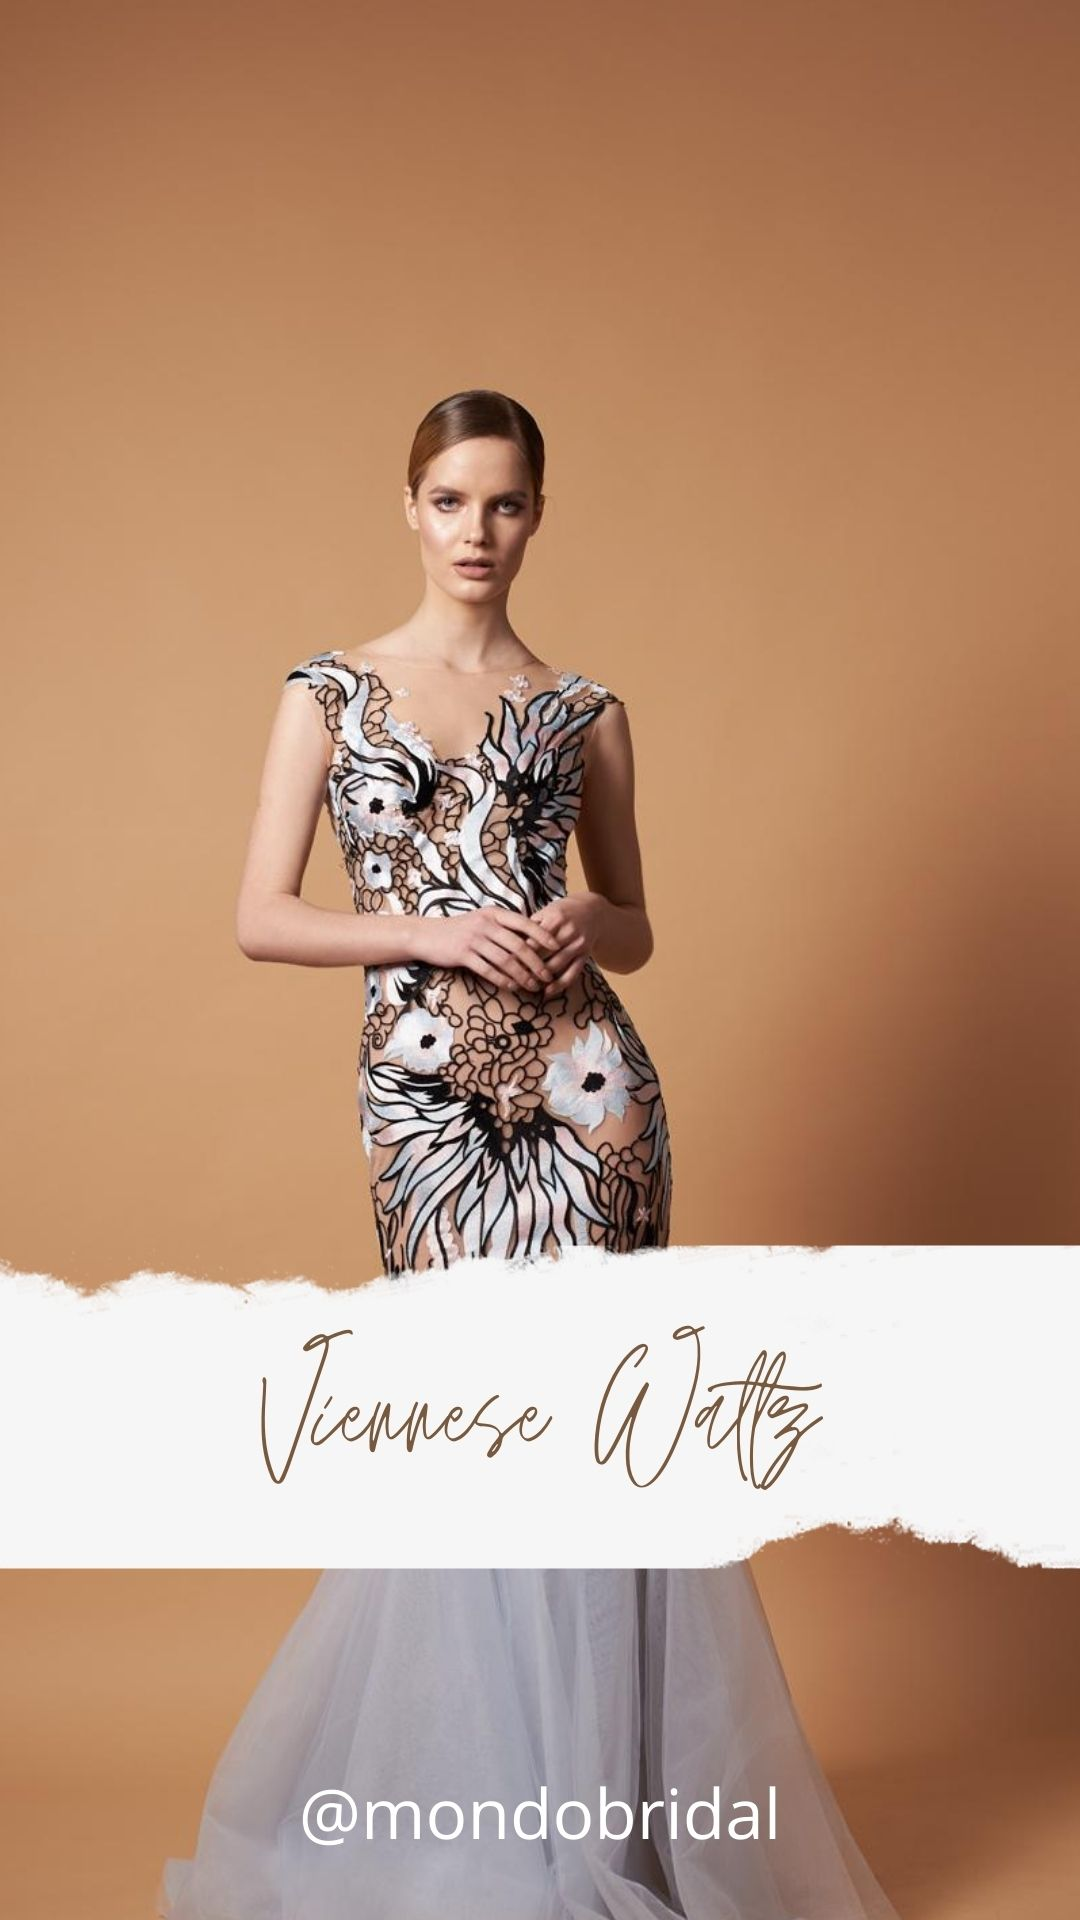 Evening Wear from the Melody Collection – Viennese Waltz